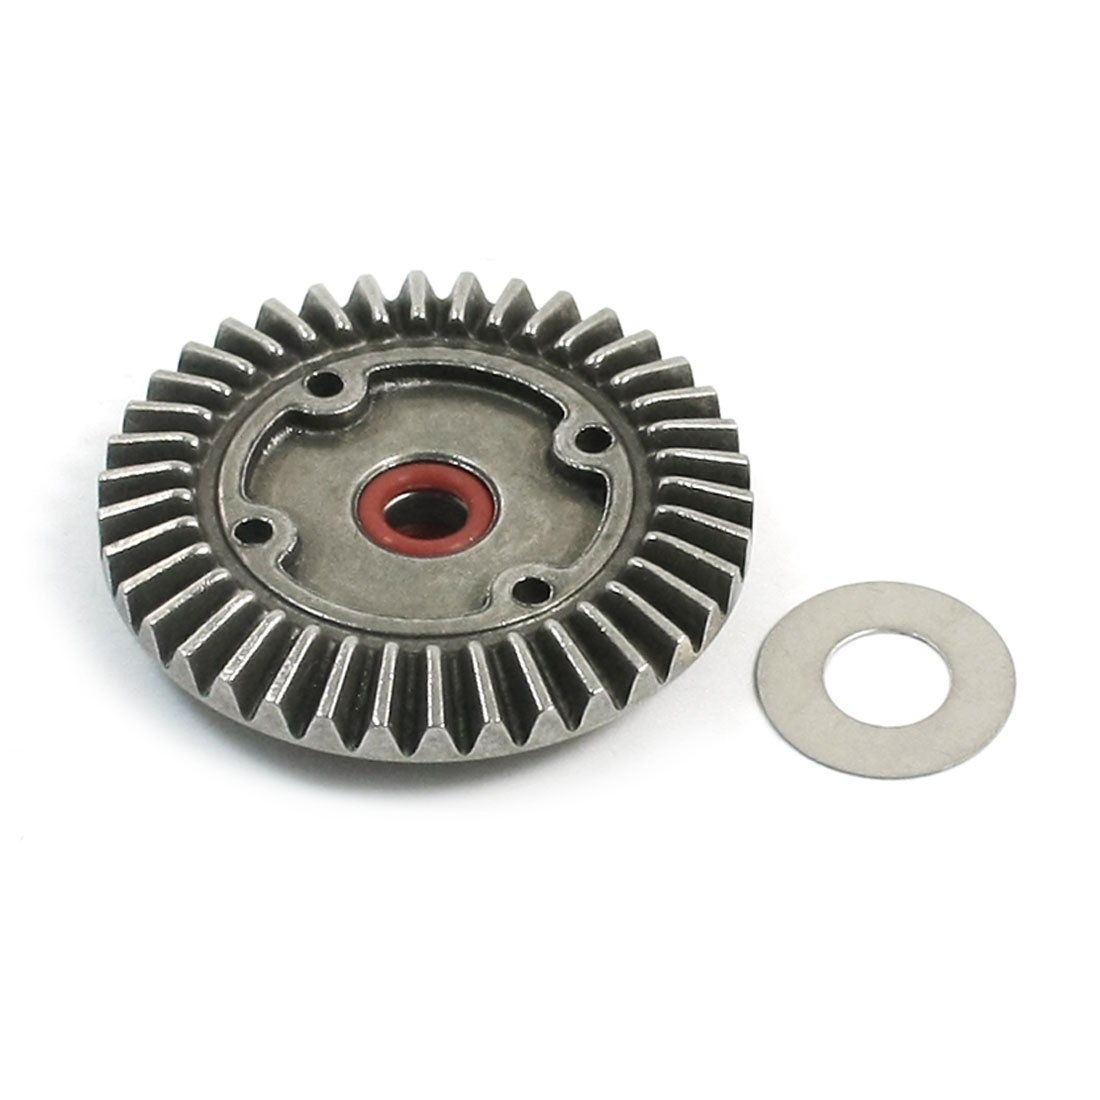 02029 Diff. Main Gear 38T Spare Parts for 1/10 94111 RC Racing Car